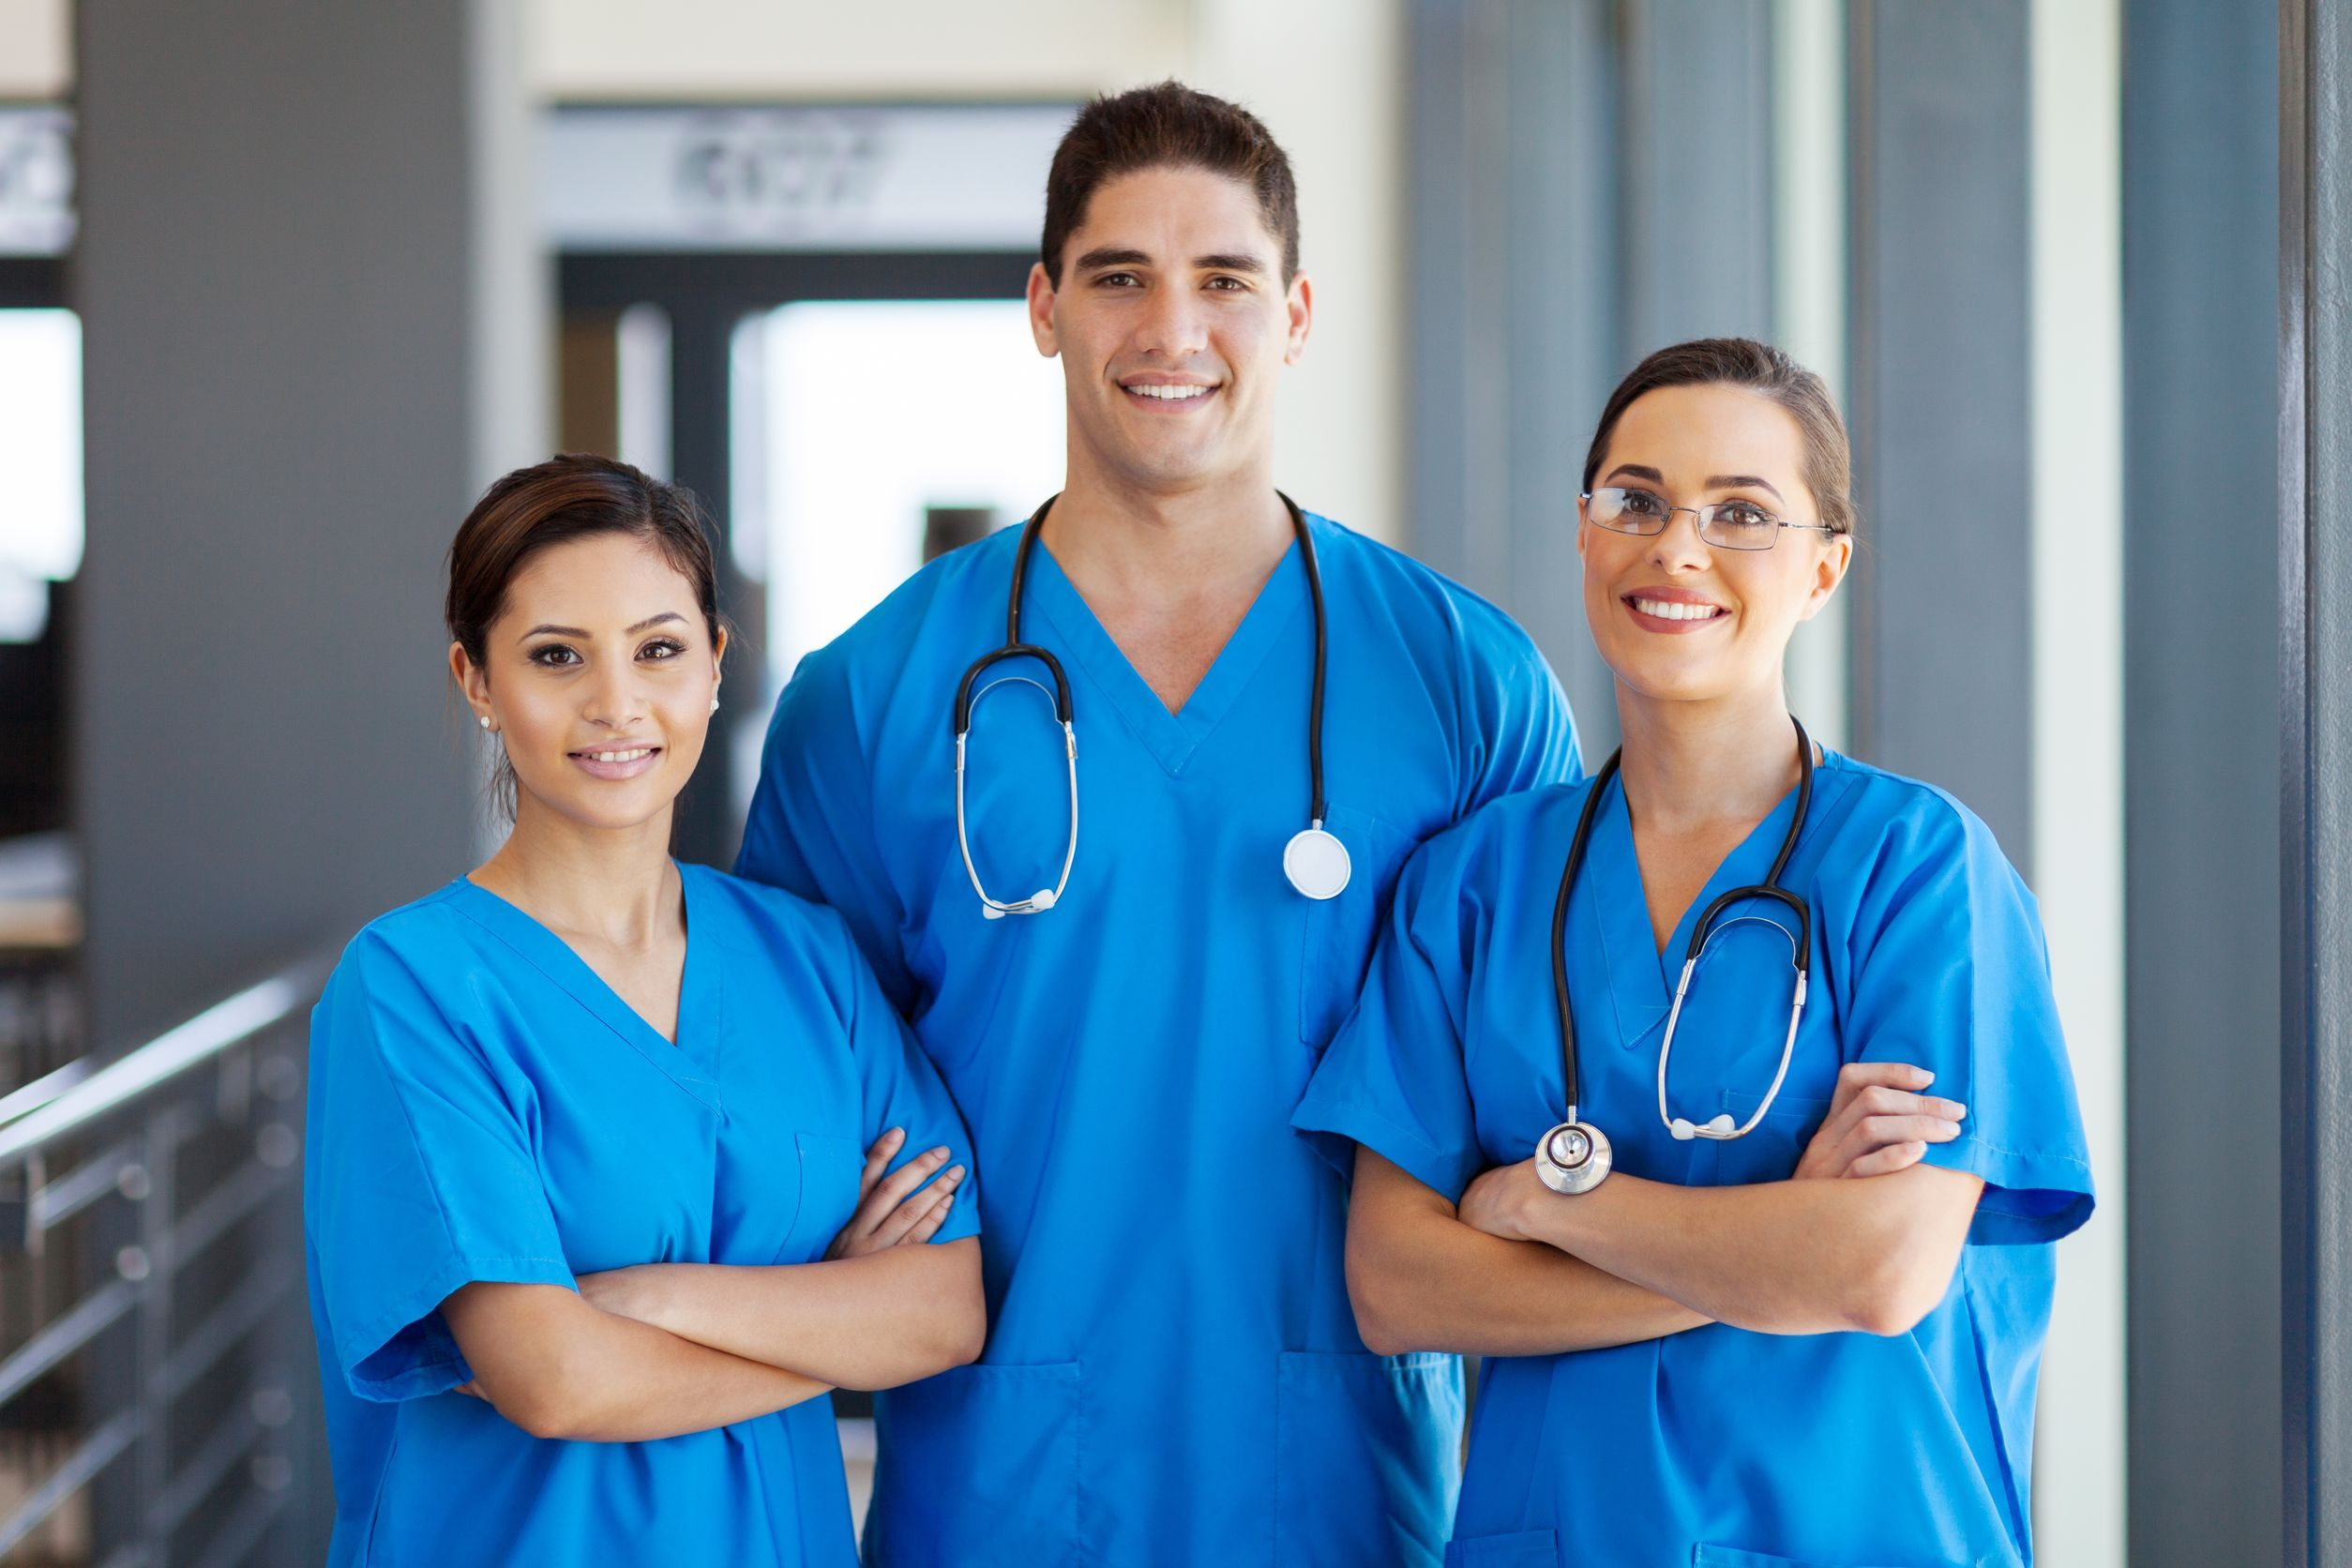 want a career you can believe in pursue a life in healthcare